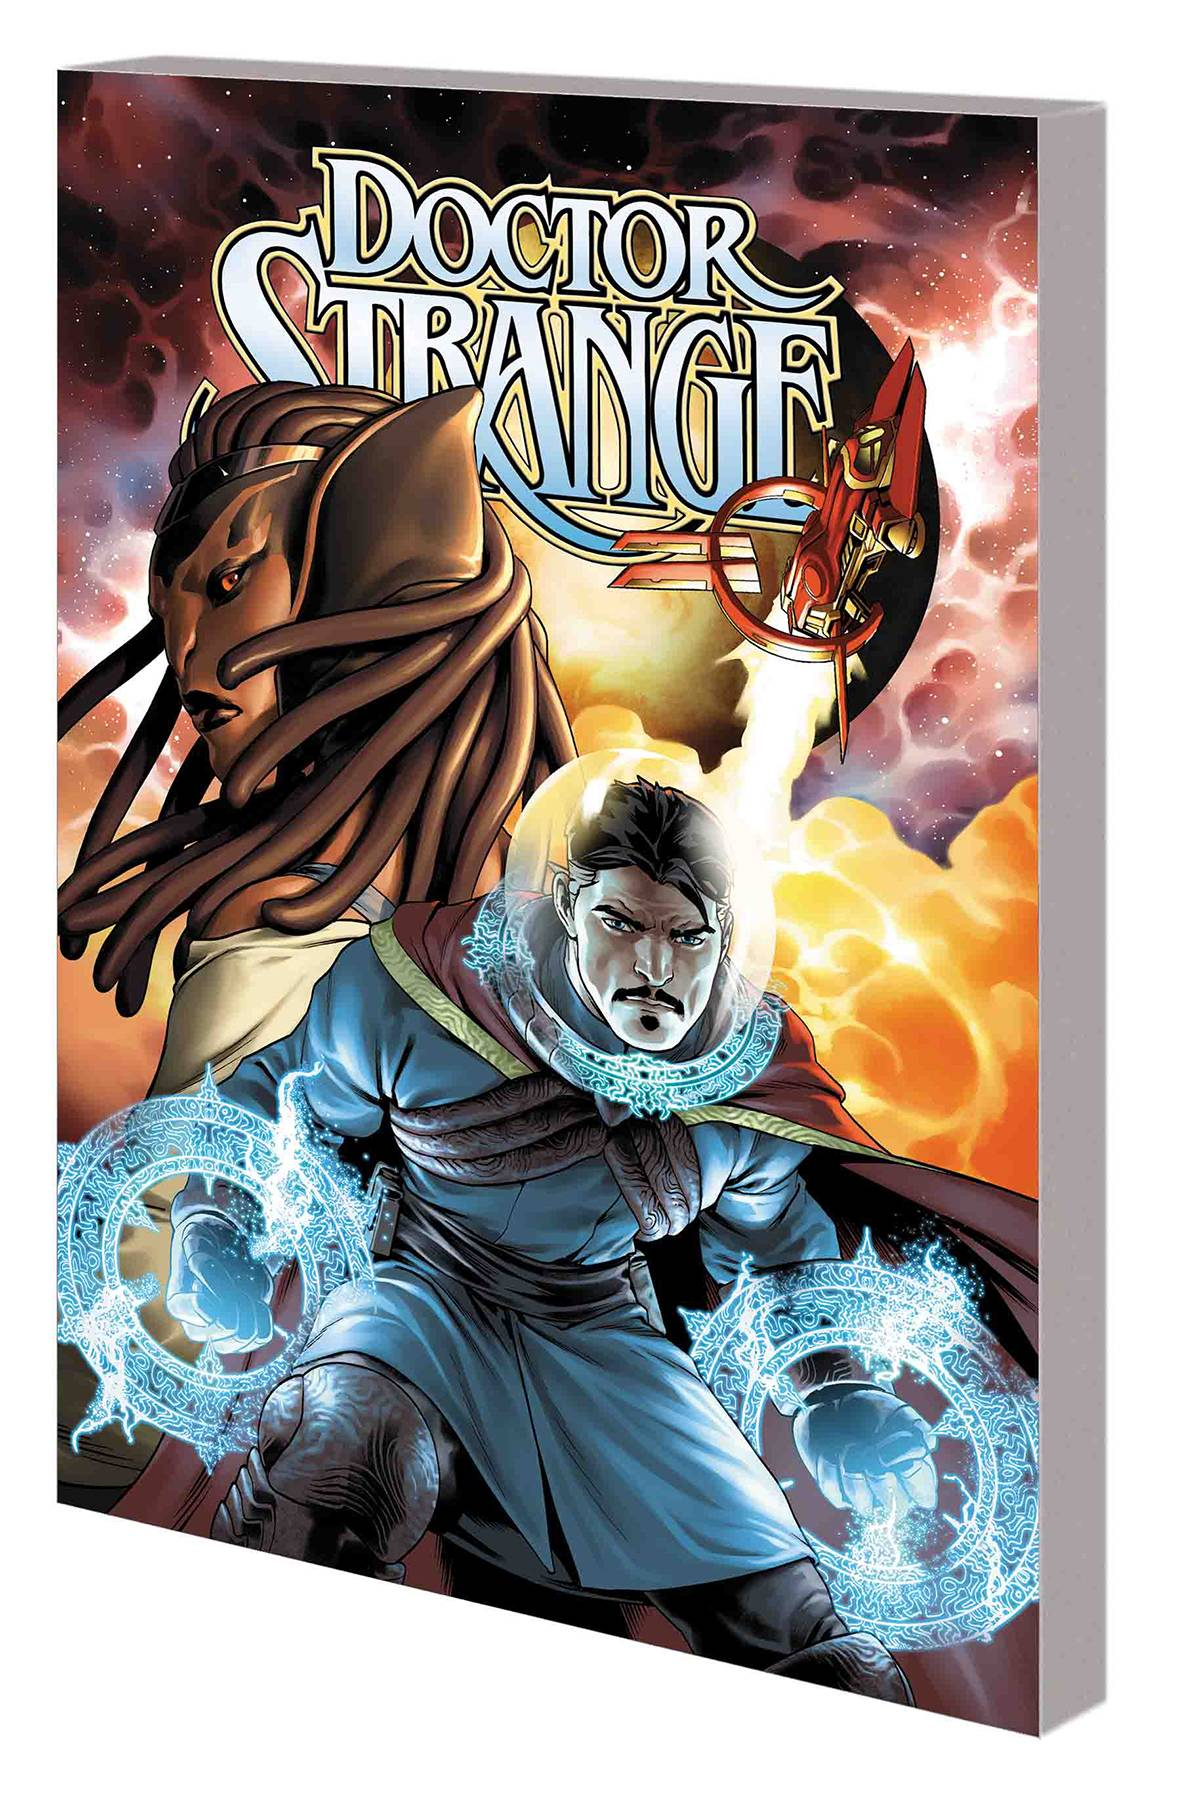 Doctor Strange TP Vol. 1 Across the Universe